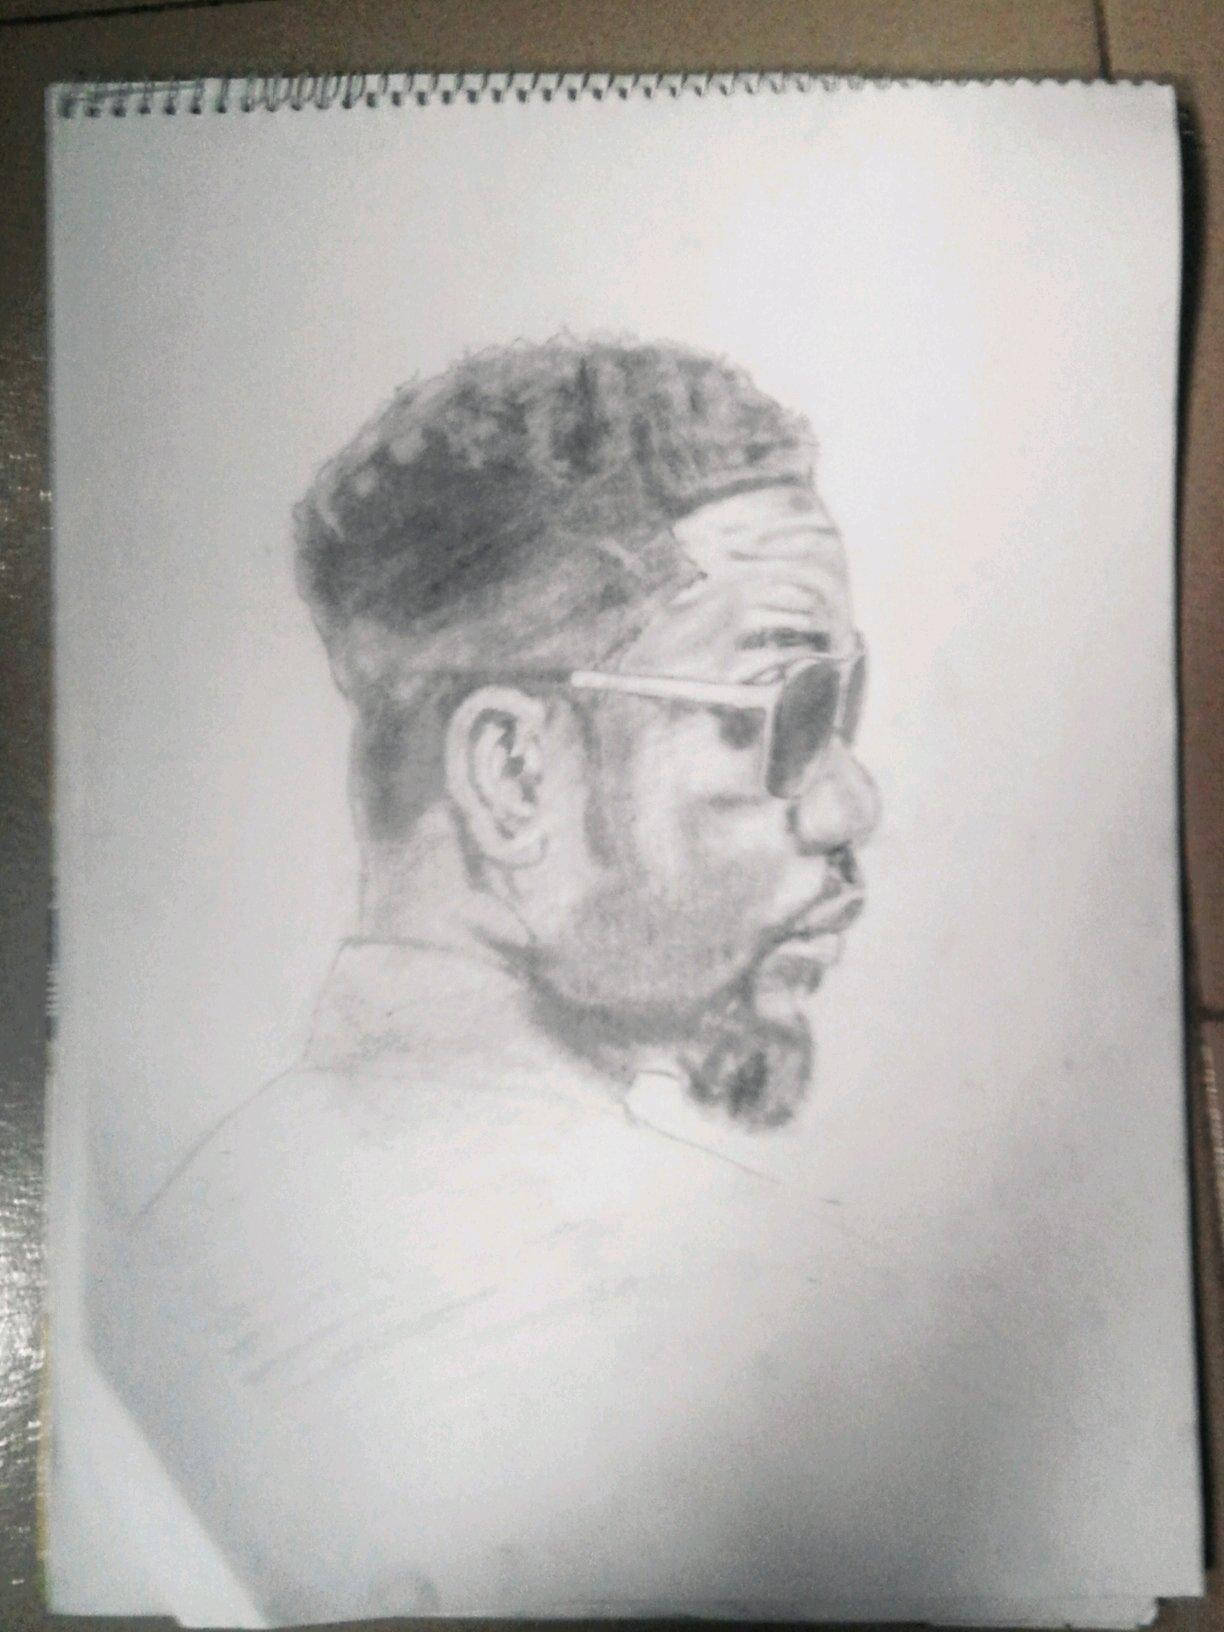 Femzi lamarr on twitter pencil drawing of sarkodie http t co qb7ztvijgd